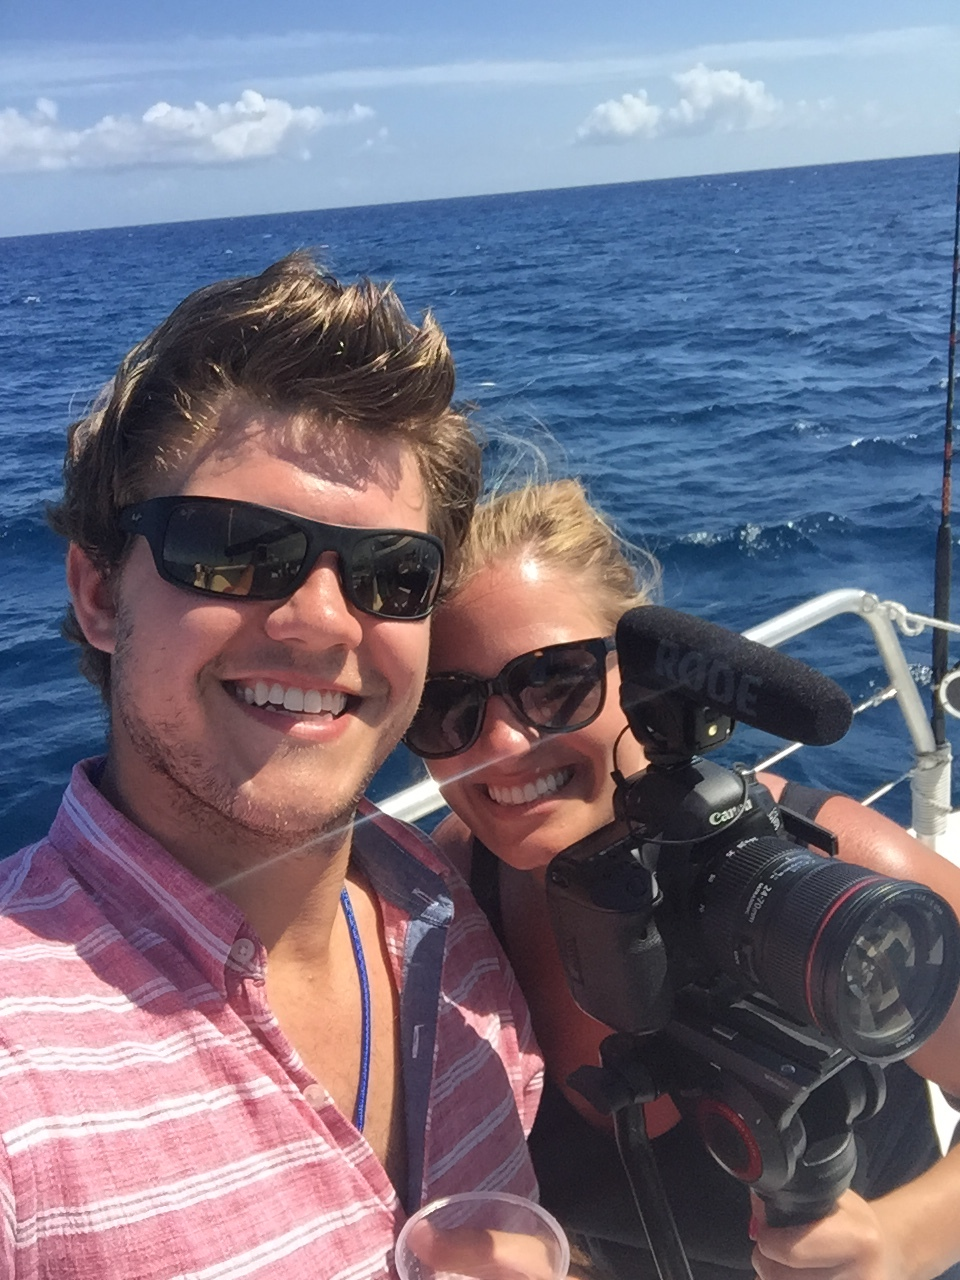 Brother/sister bonding on the boat in Mexico!